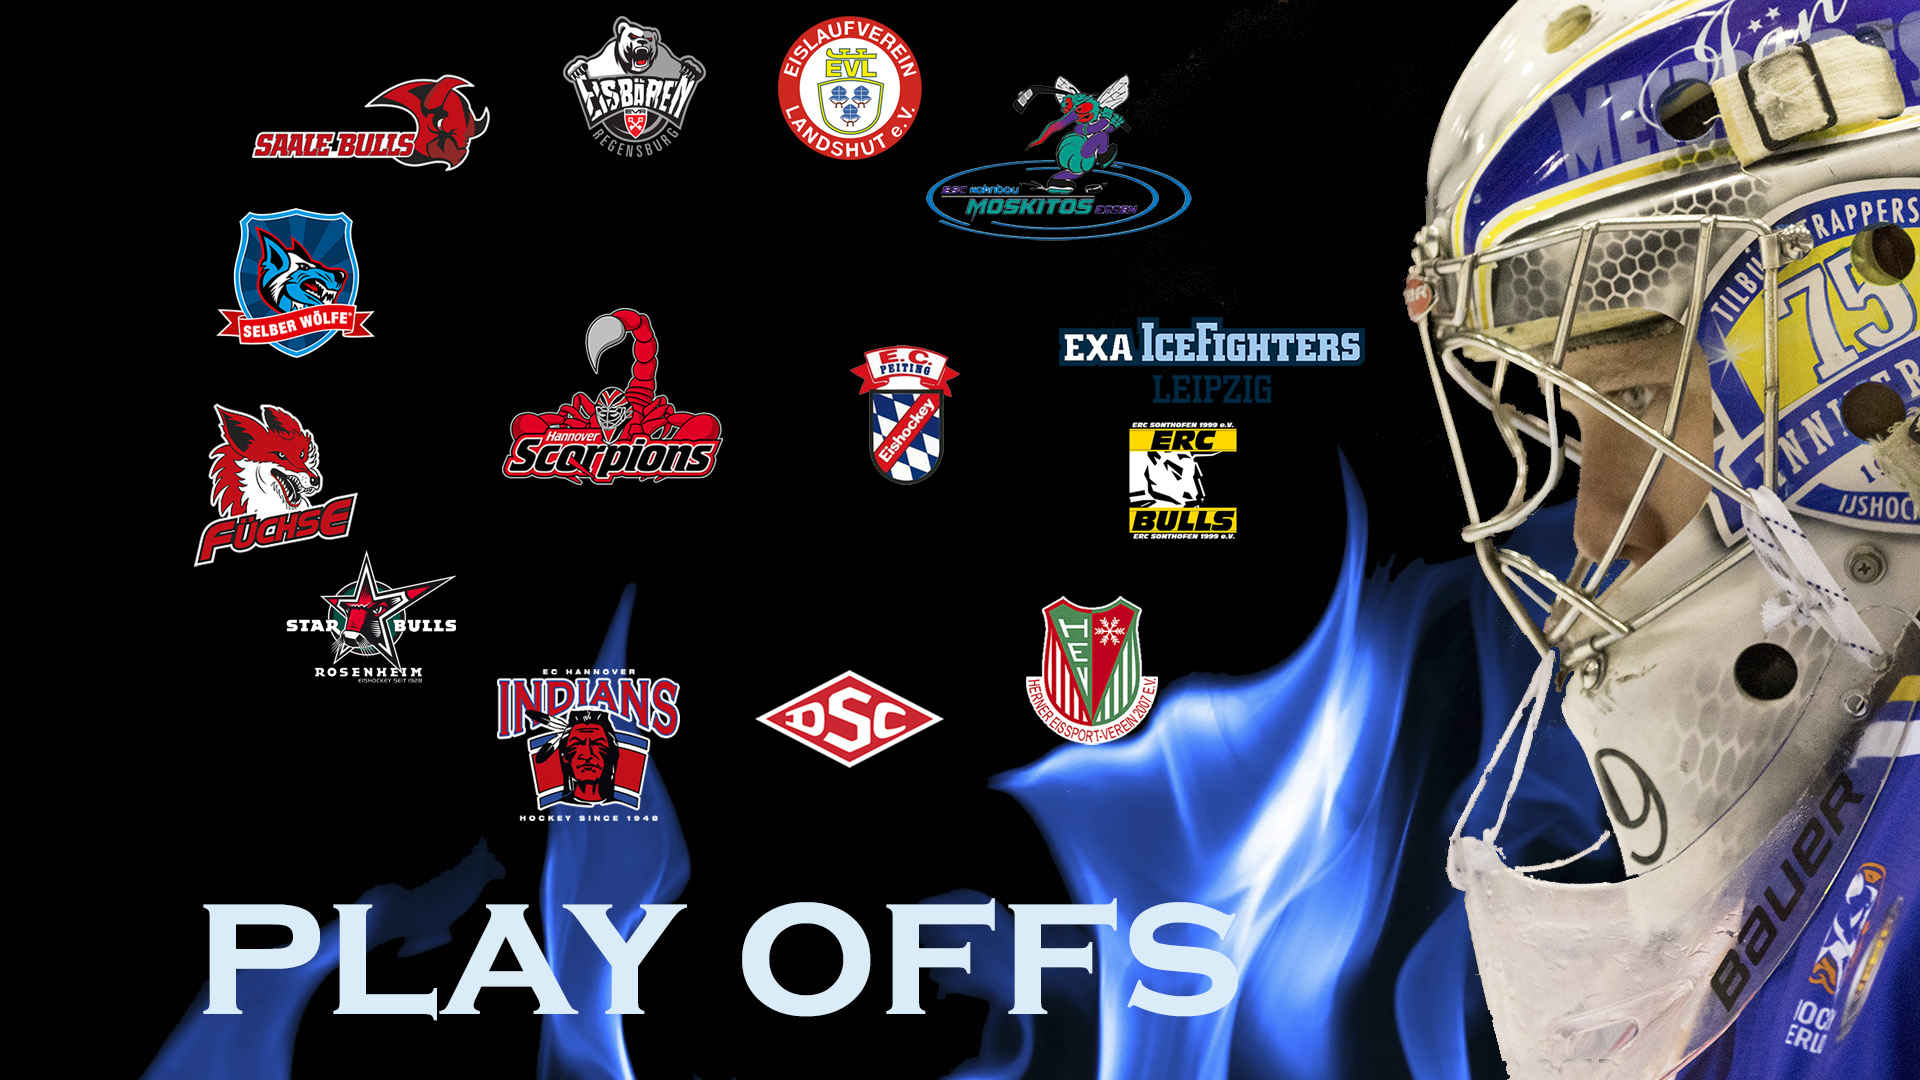 oberliga playoffs